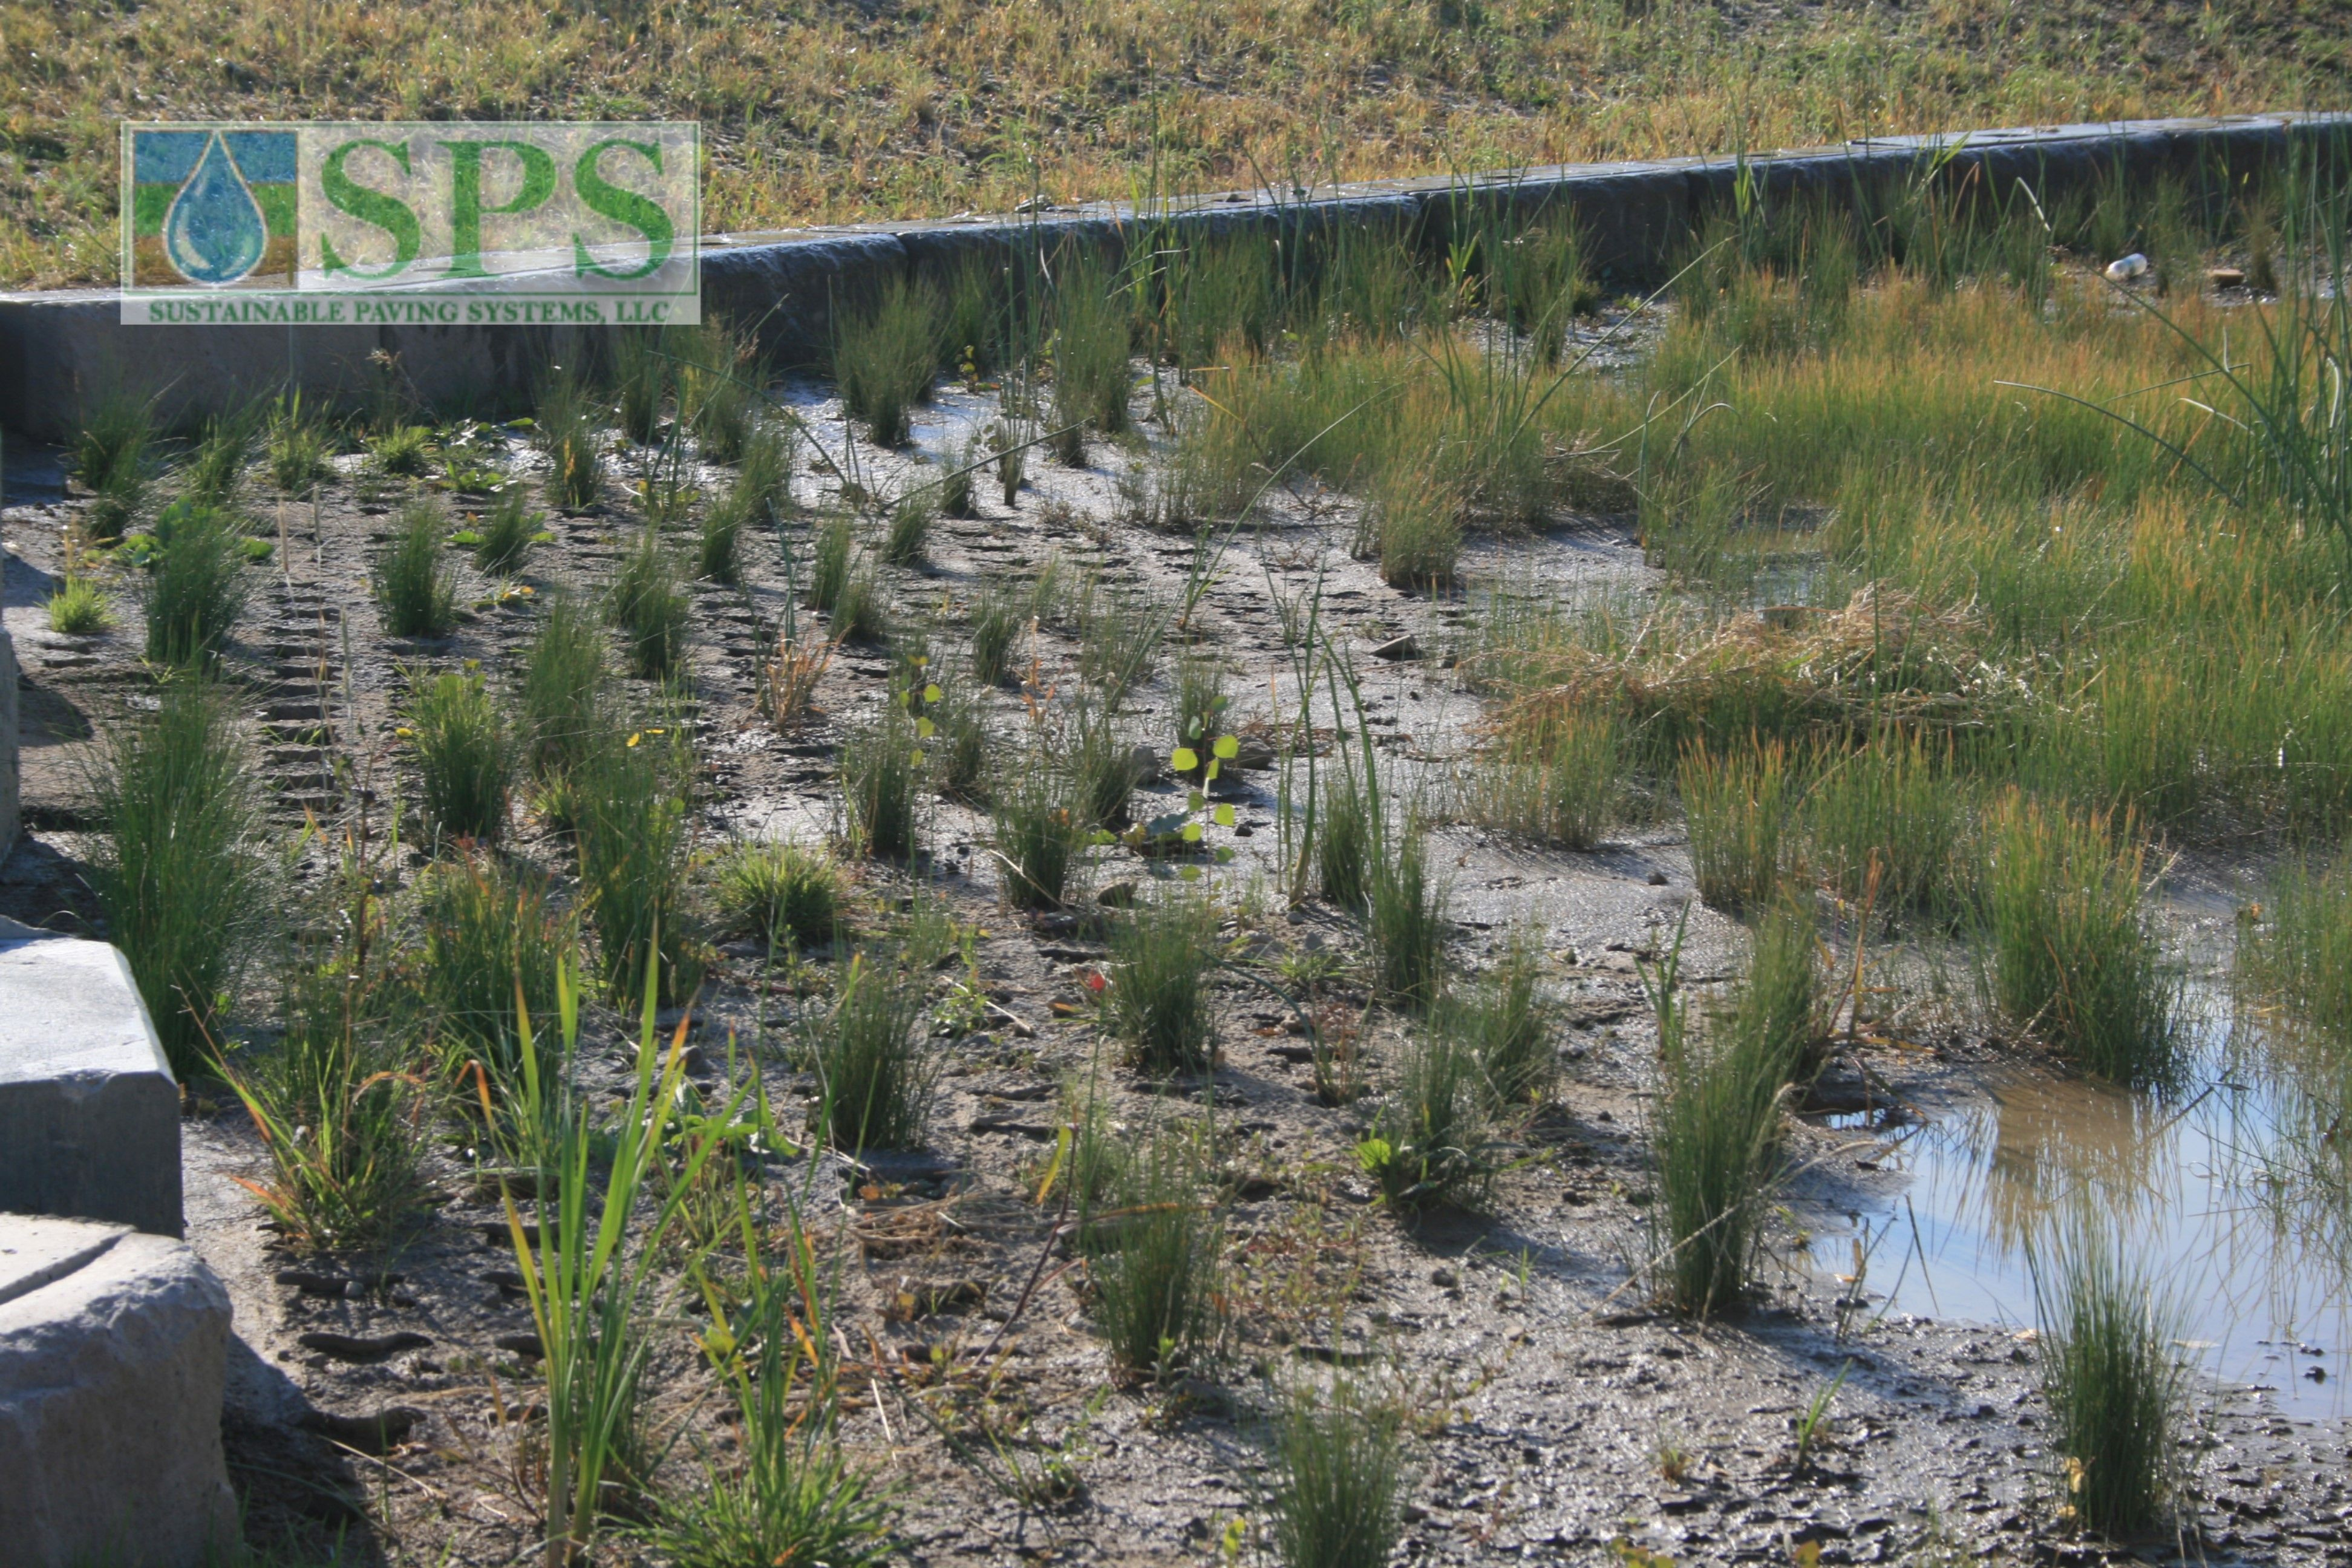 Grasscrete Partially Concealed System At Nrel Detention Pond_03